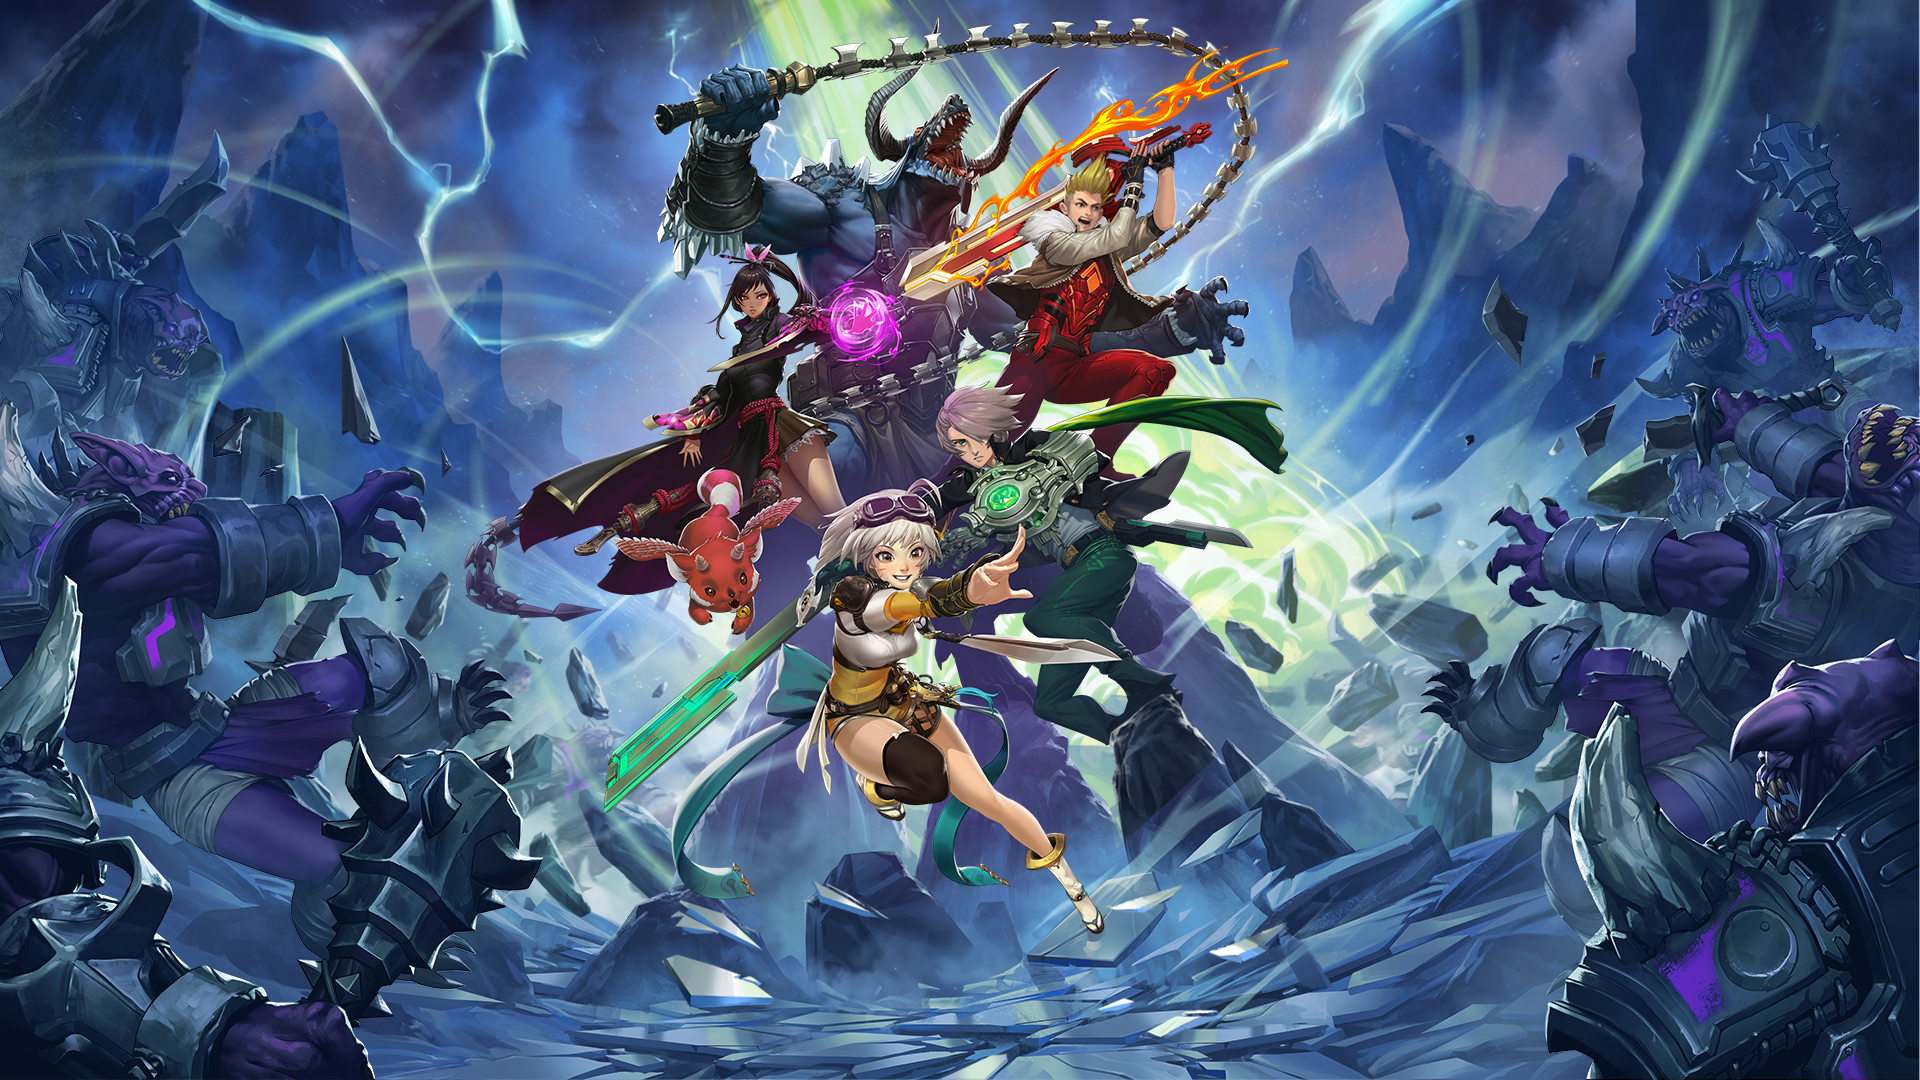 Epic Games lanza Battle Breakers, un RPG free-to-play para móviles y PC